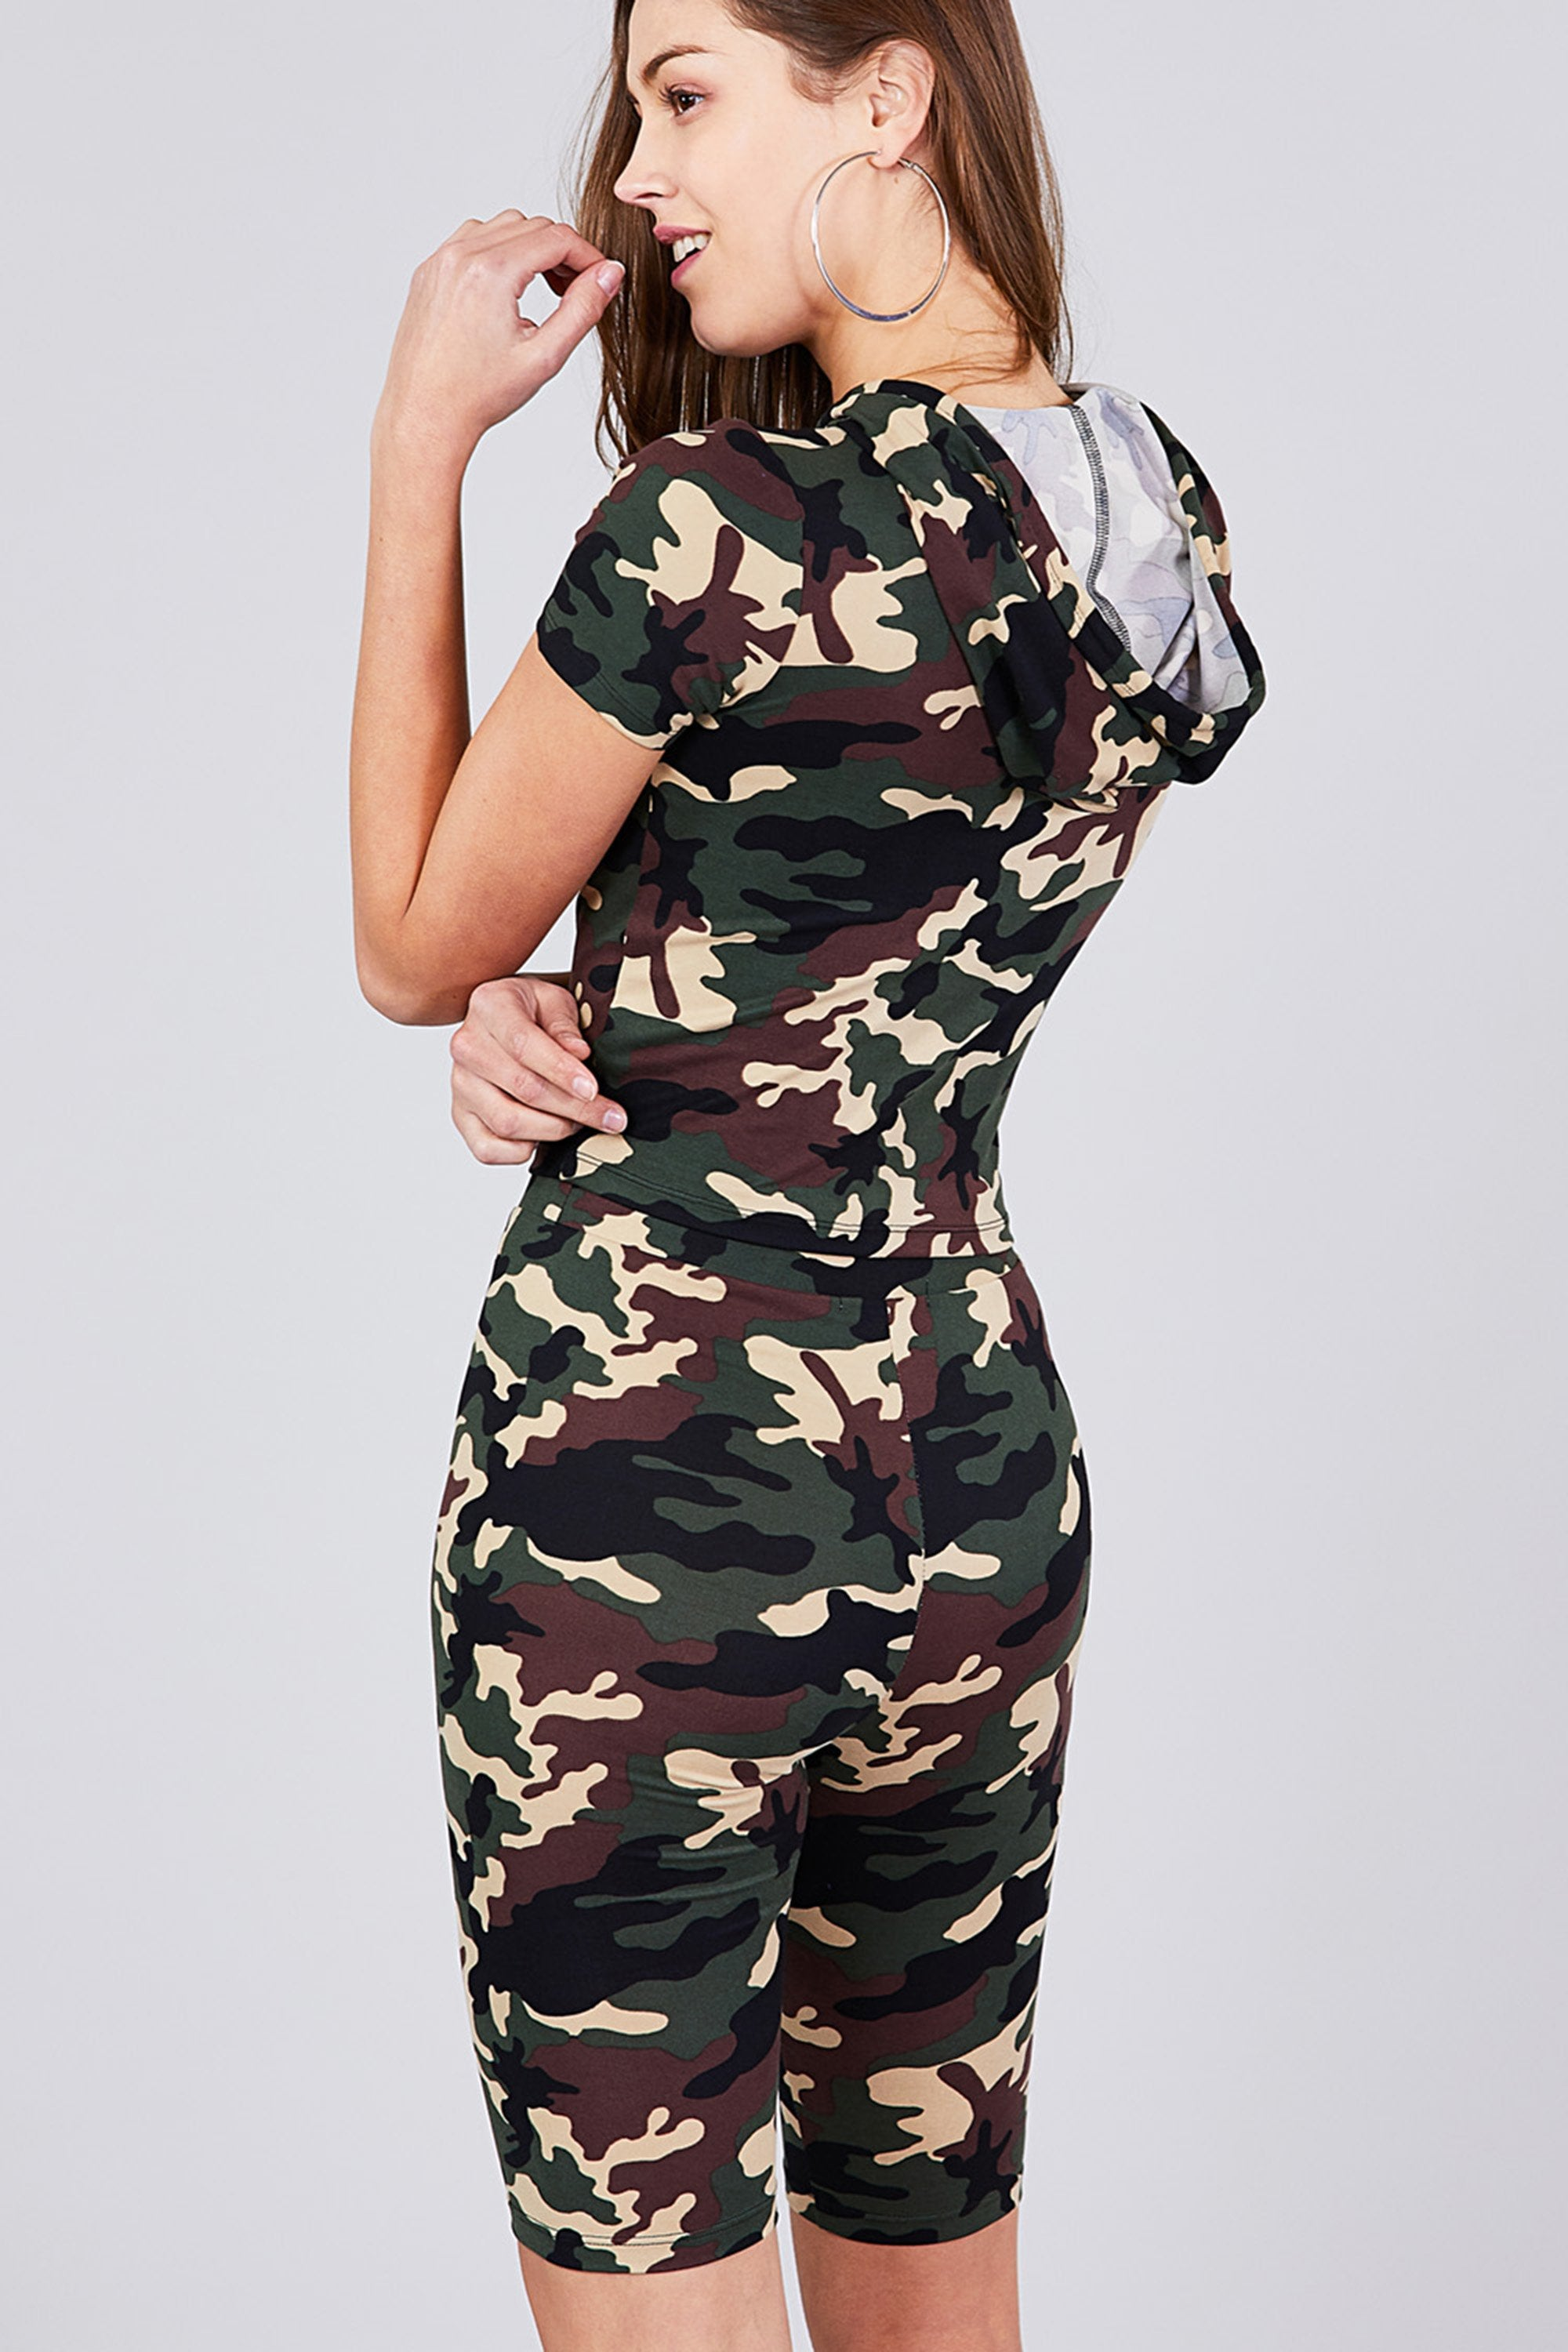 Women's Short Sleeve Camo Print Hoodie Top & Bermuda Set